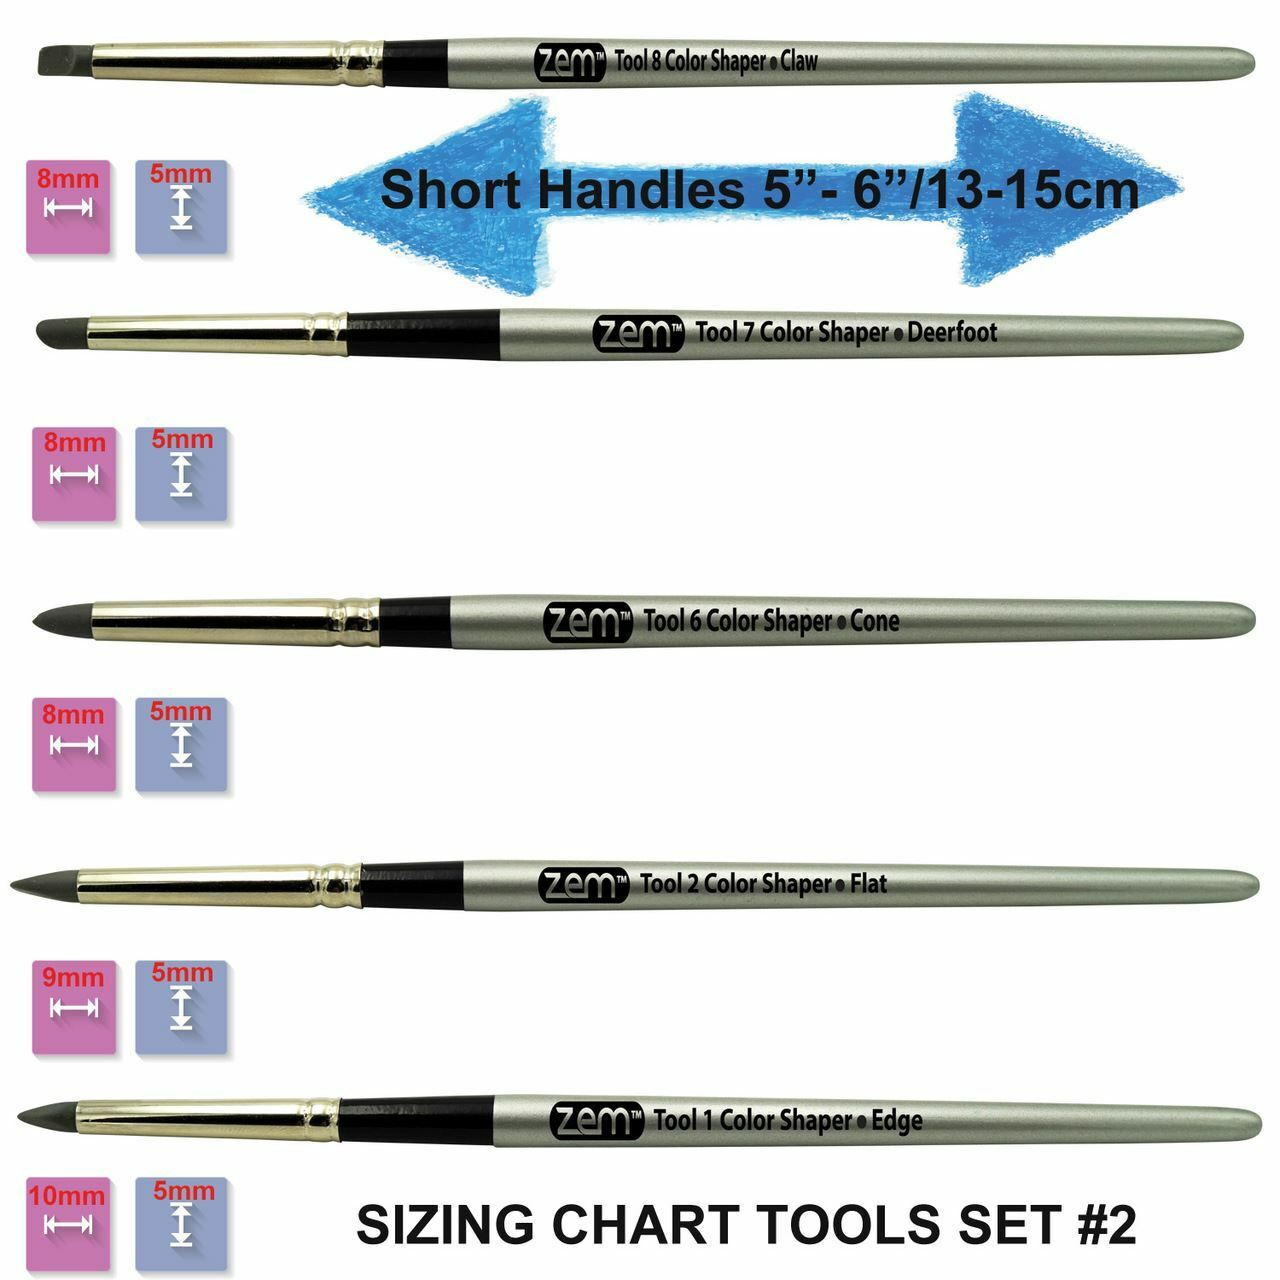 TOOL-8 Silicon Shaper Brush CLAW